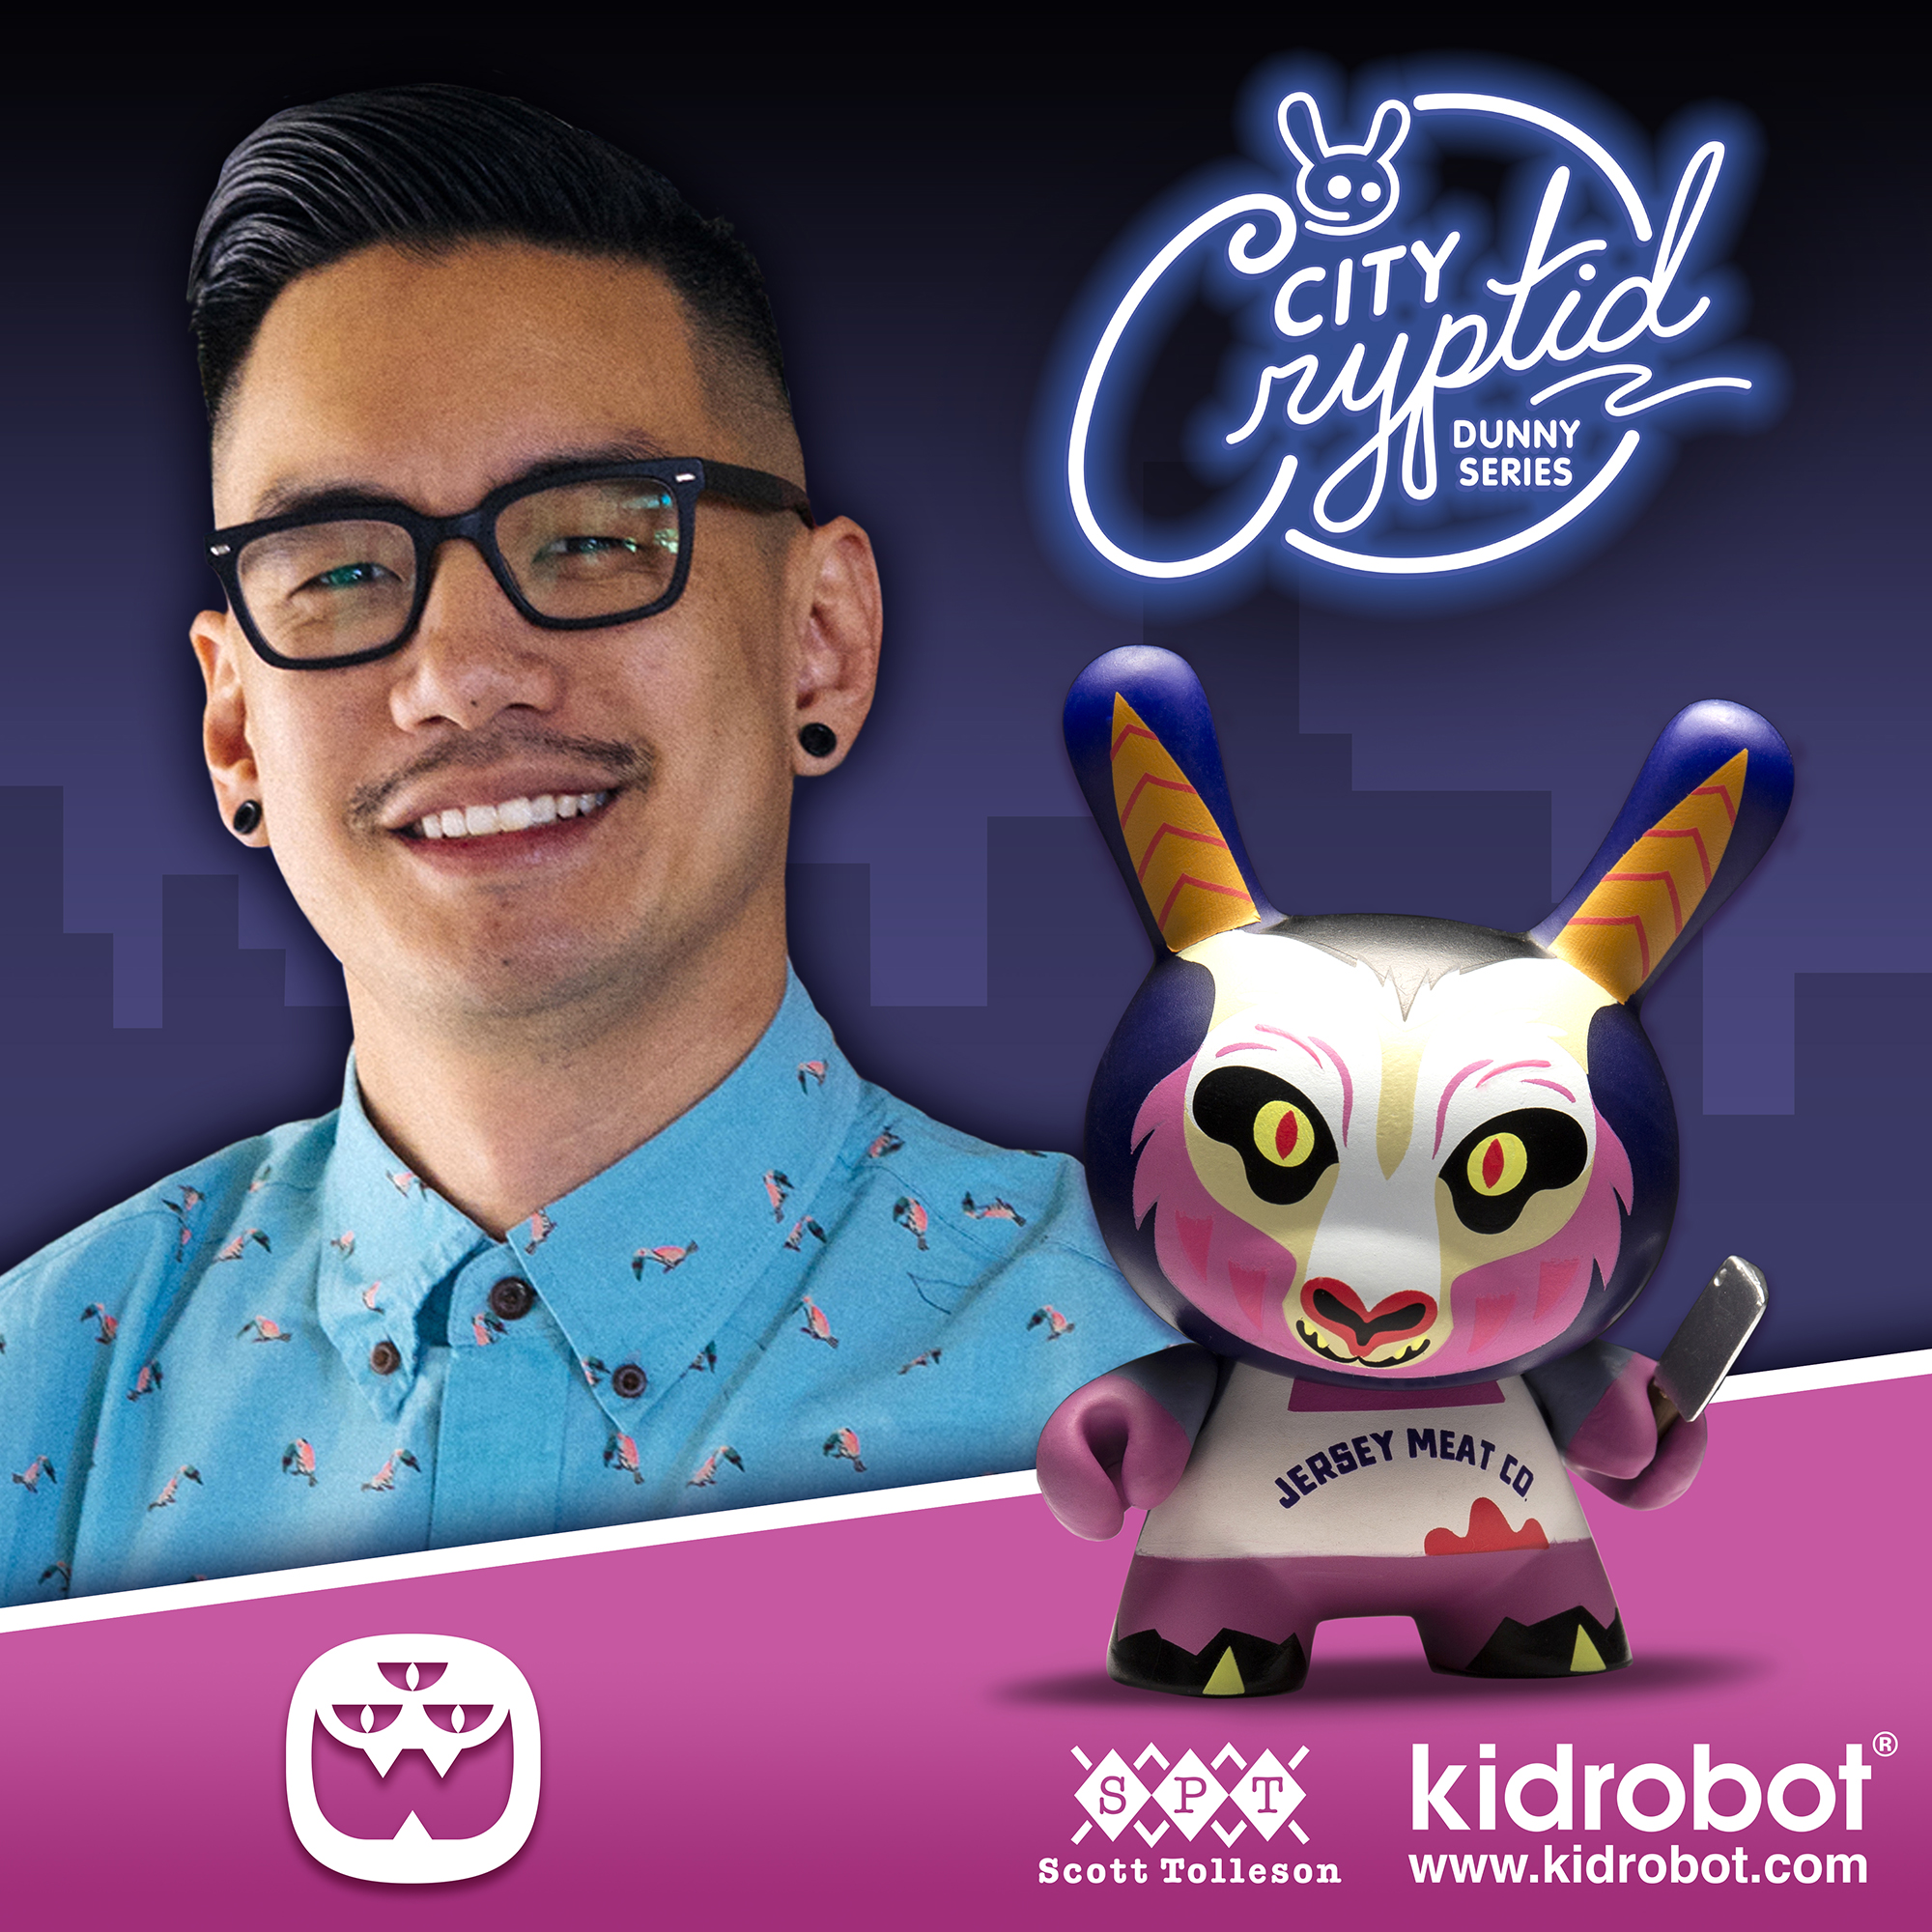 Chris Lee x City Cryptid Dunny Mini Series